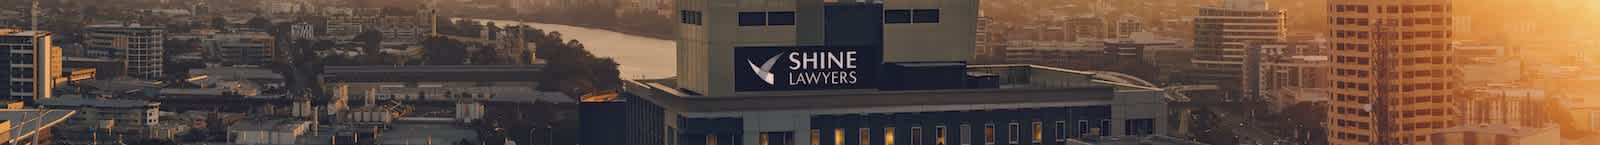 Shine Lawyers | bad financial advice lawyers | Shine Lawyers